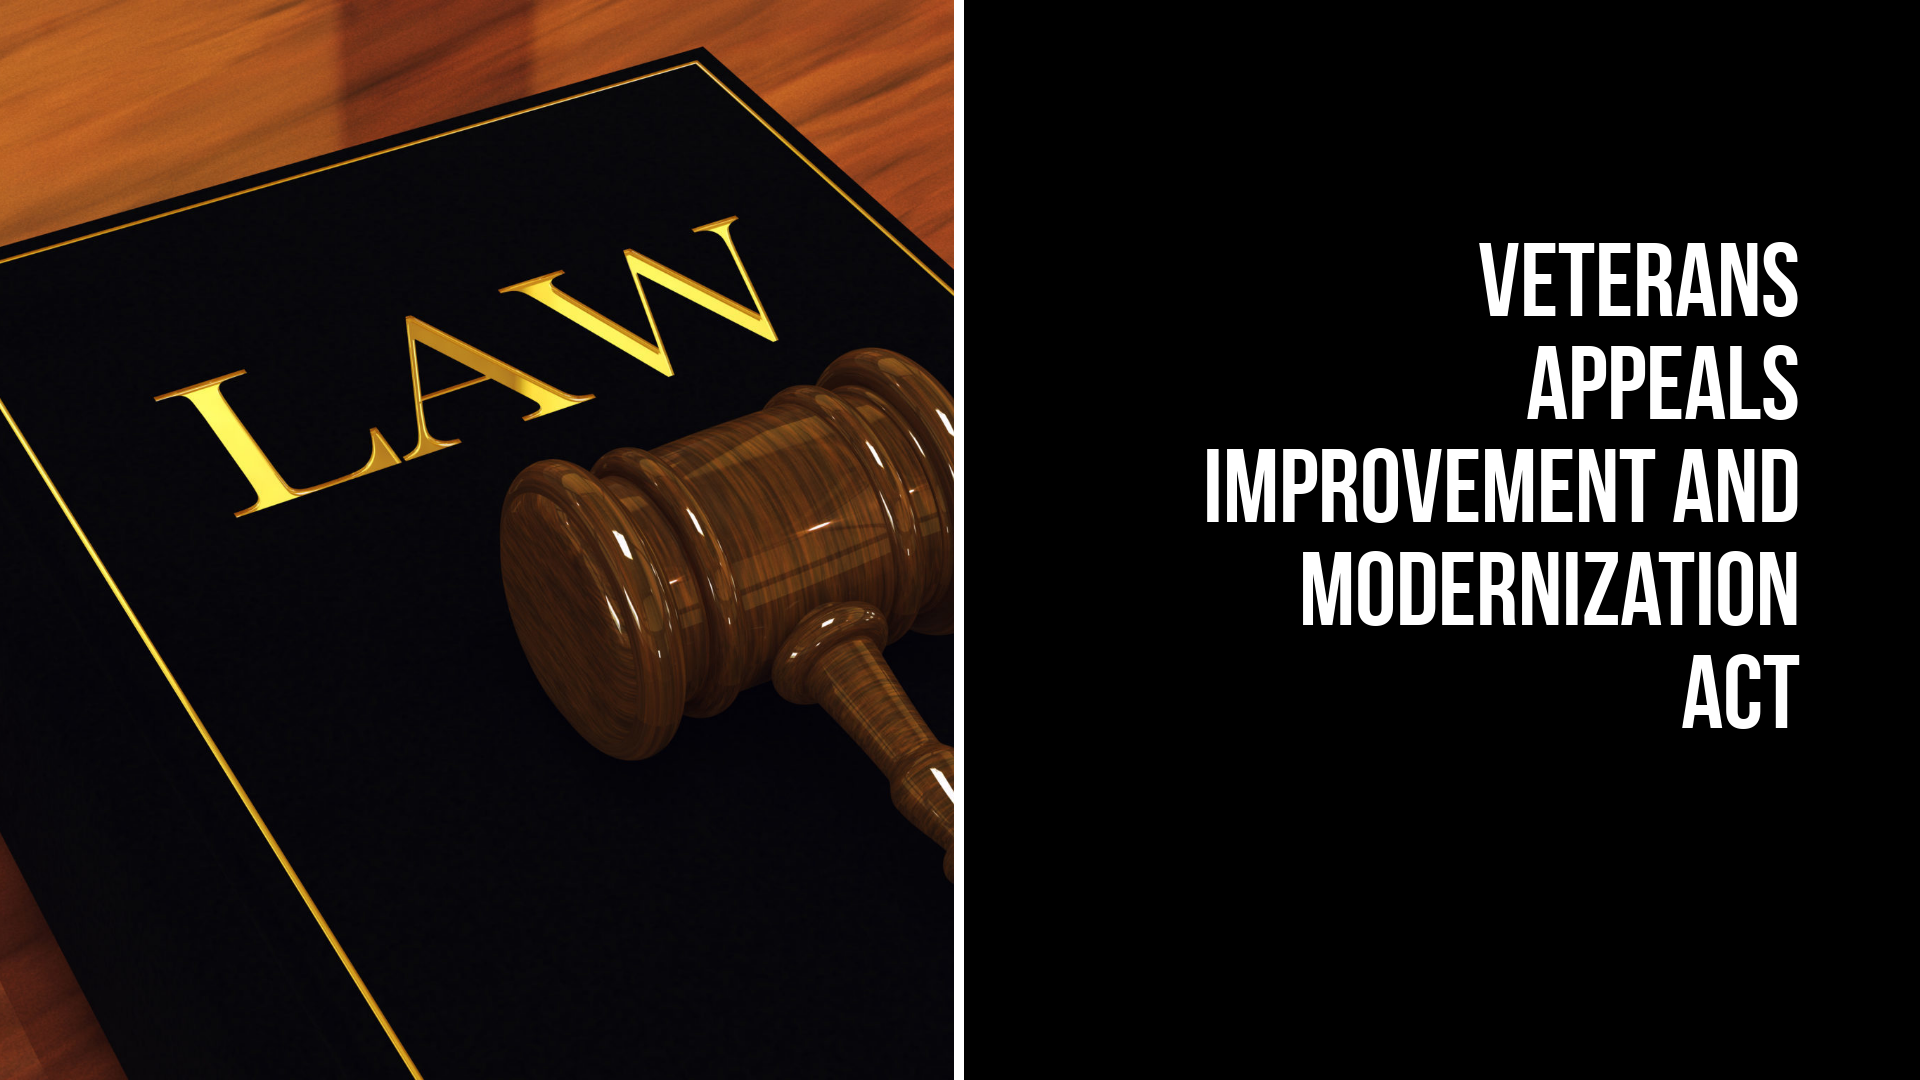 Veterans Appeals Improvement and Modernization Act